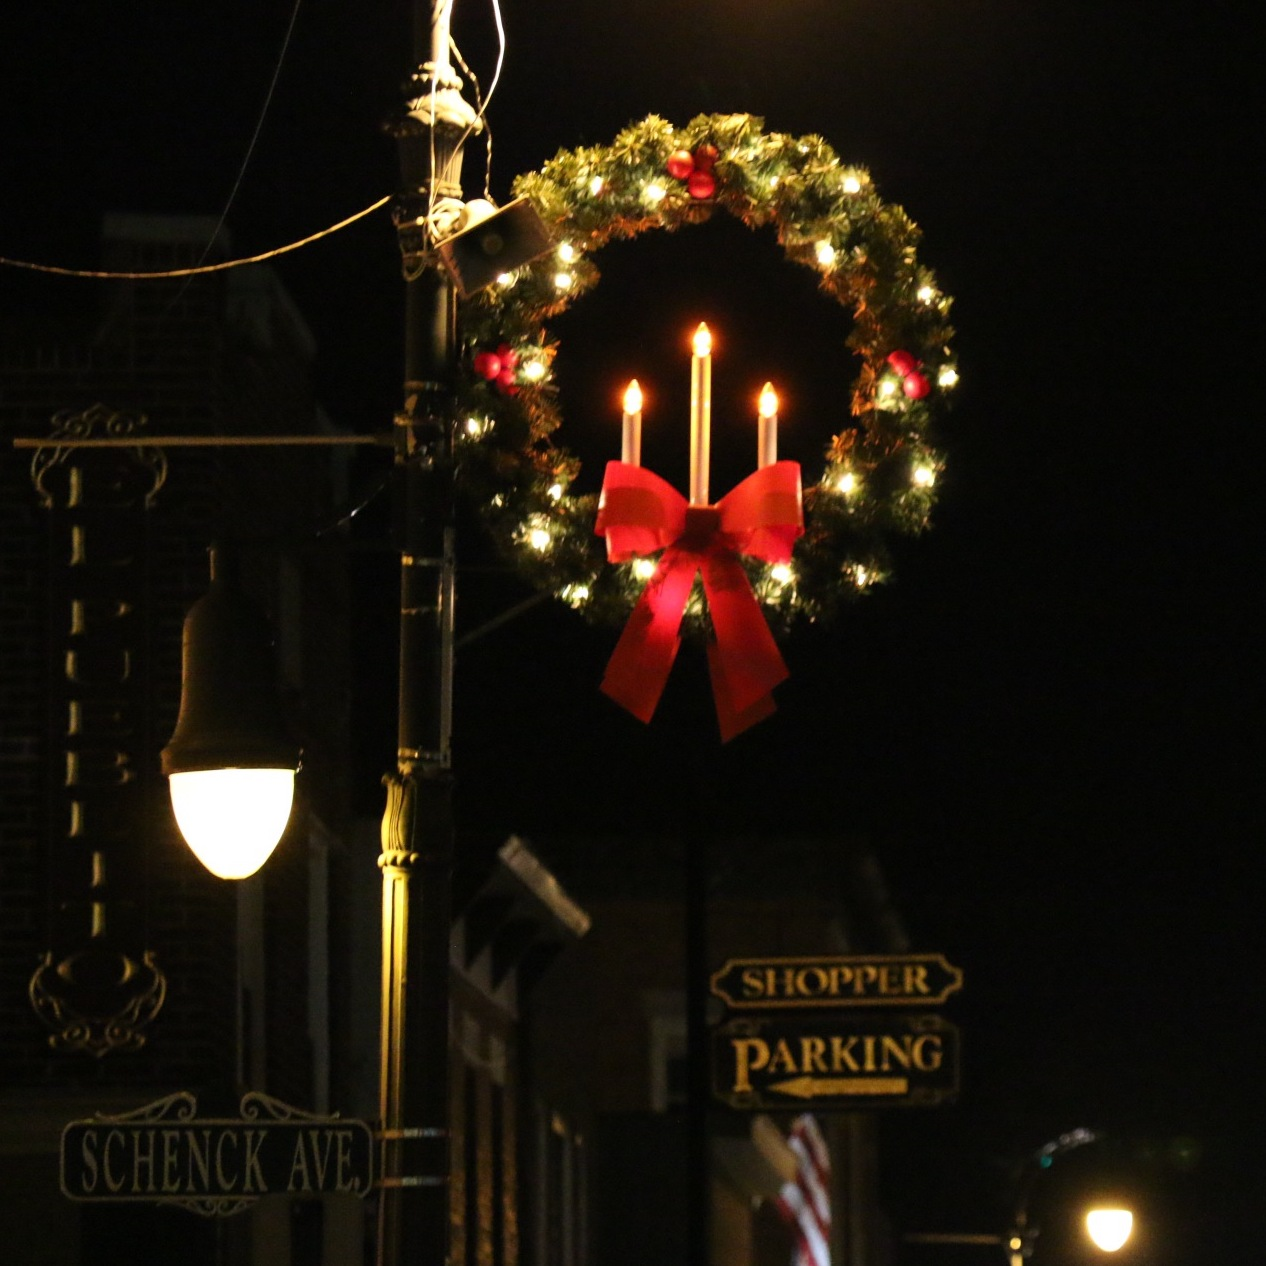 At The End Of Year Holiday Time, The BID Displays Decorations And Provide  Holiday Music.